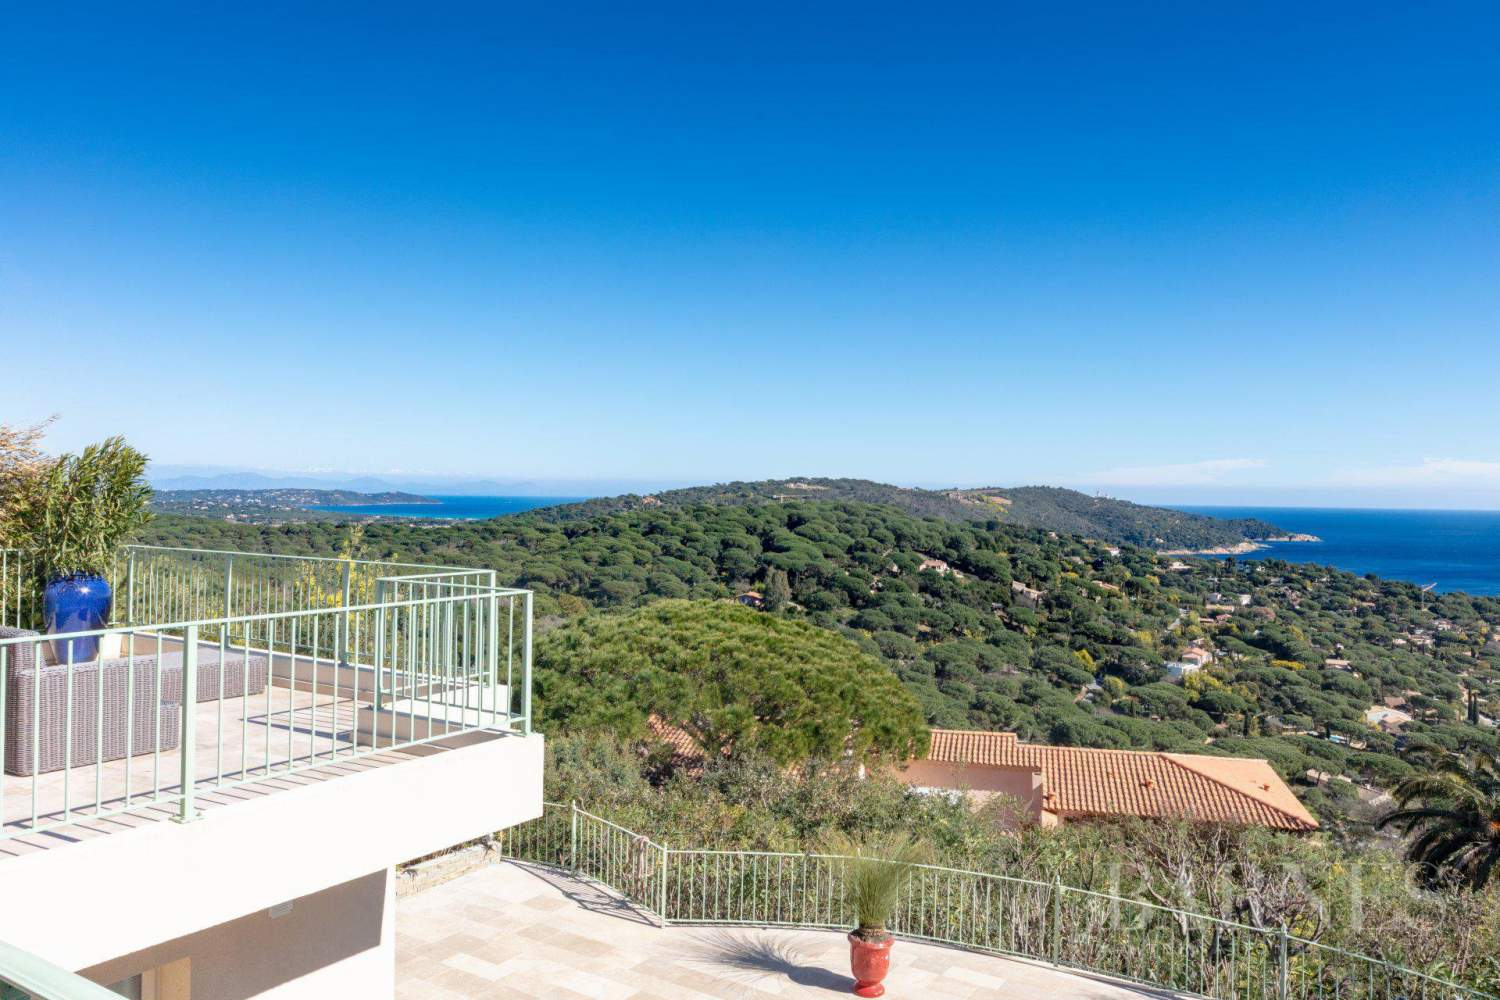 RAMATUELLE - Escalet - Villa with panoramic sea view - 5 bedrooms - Pool picture 16